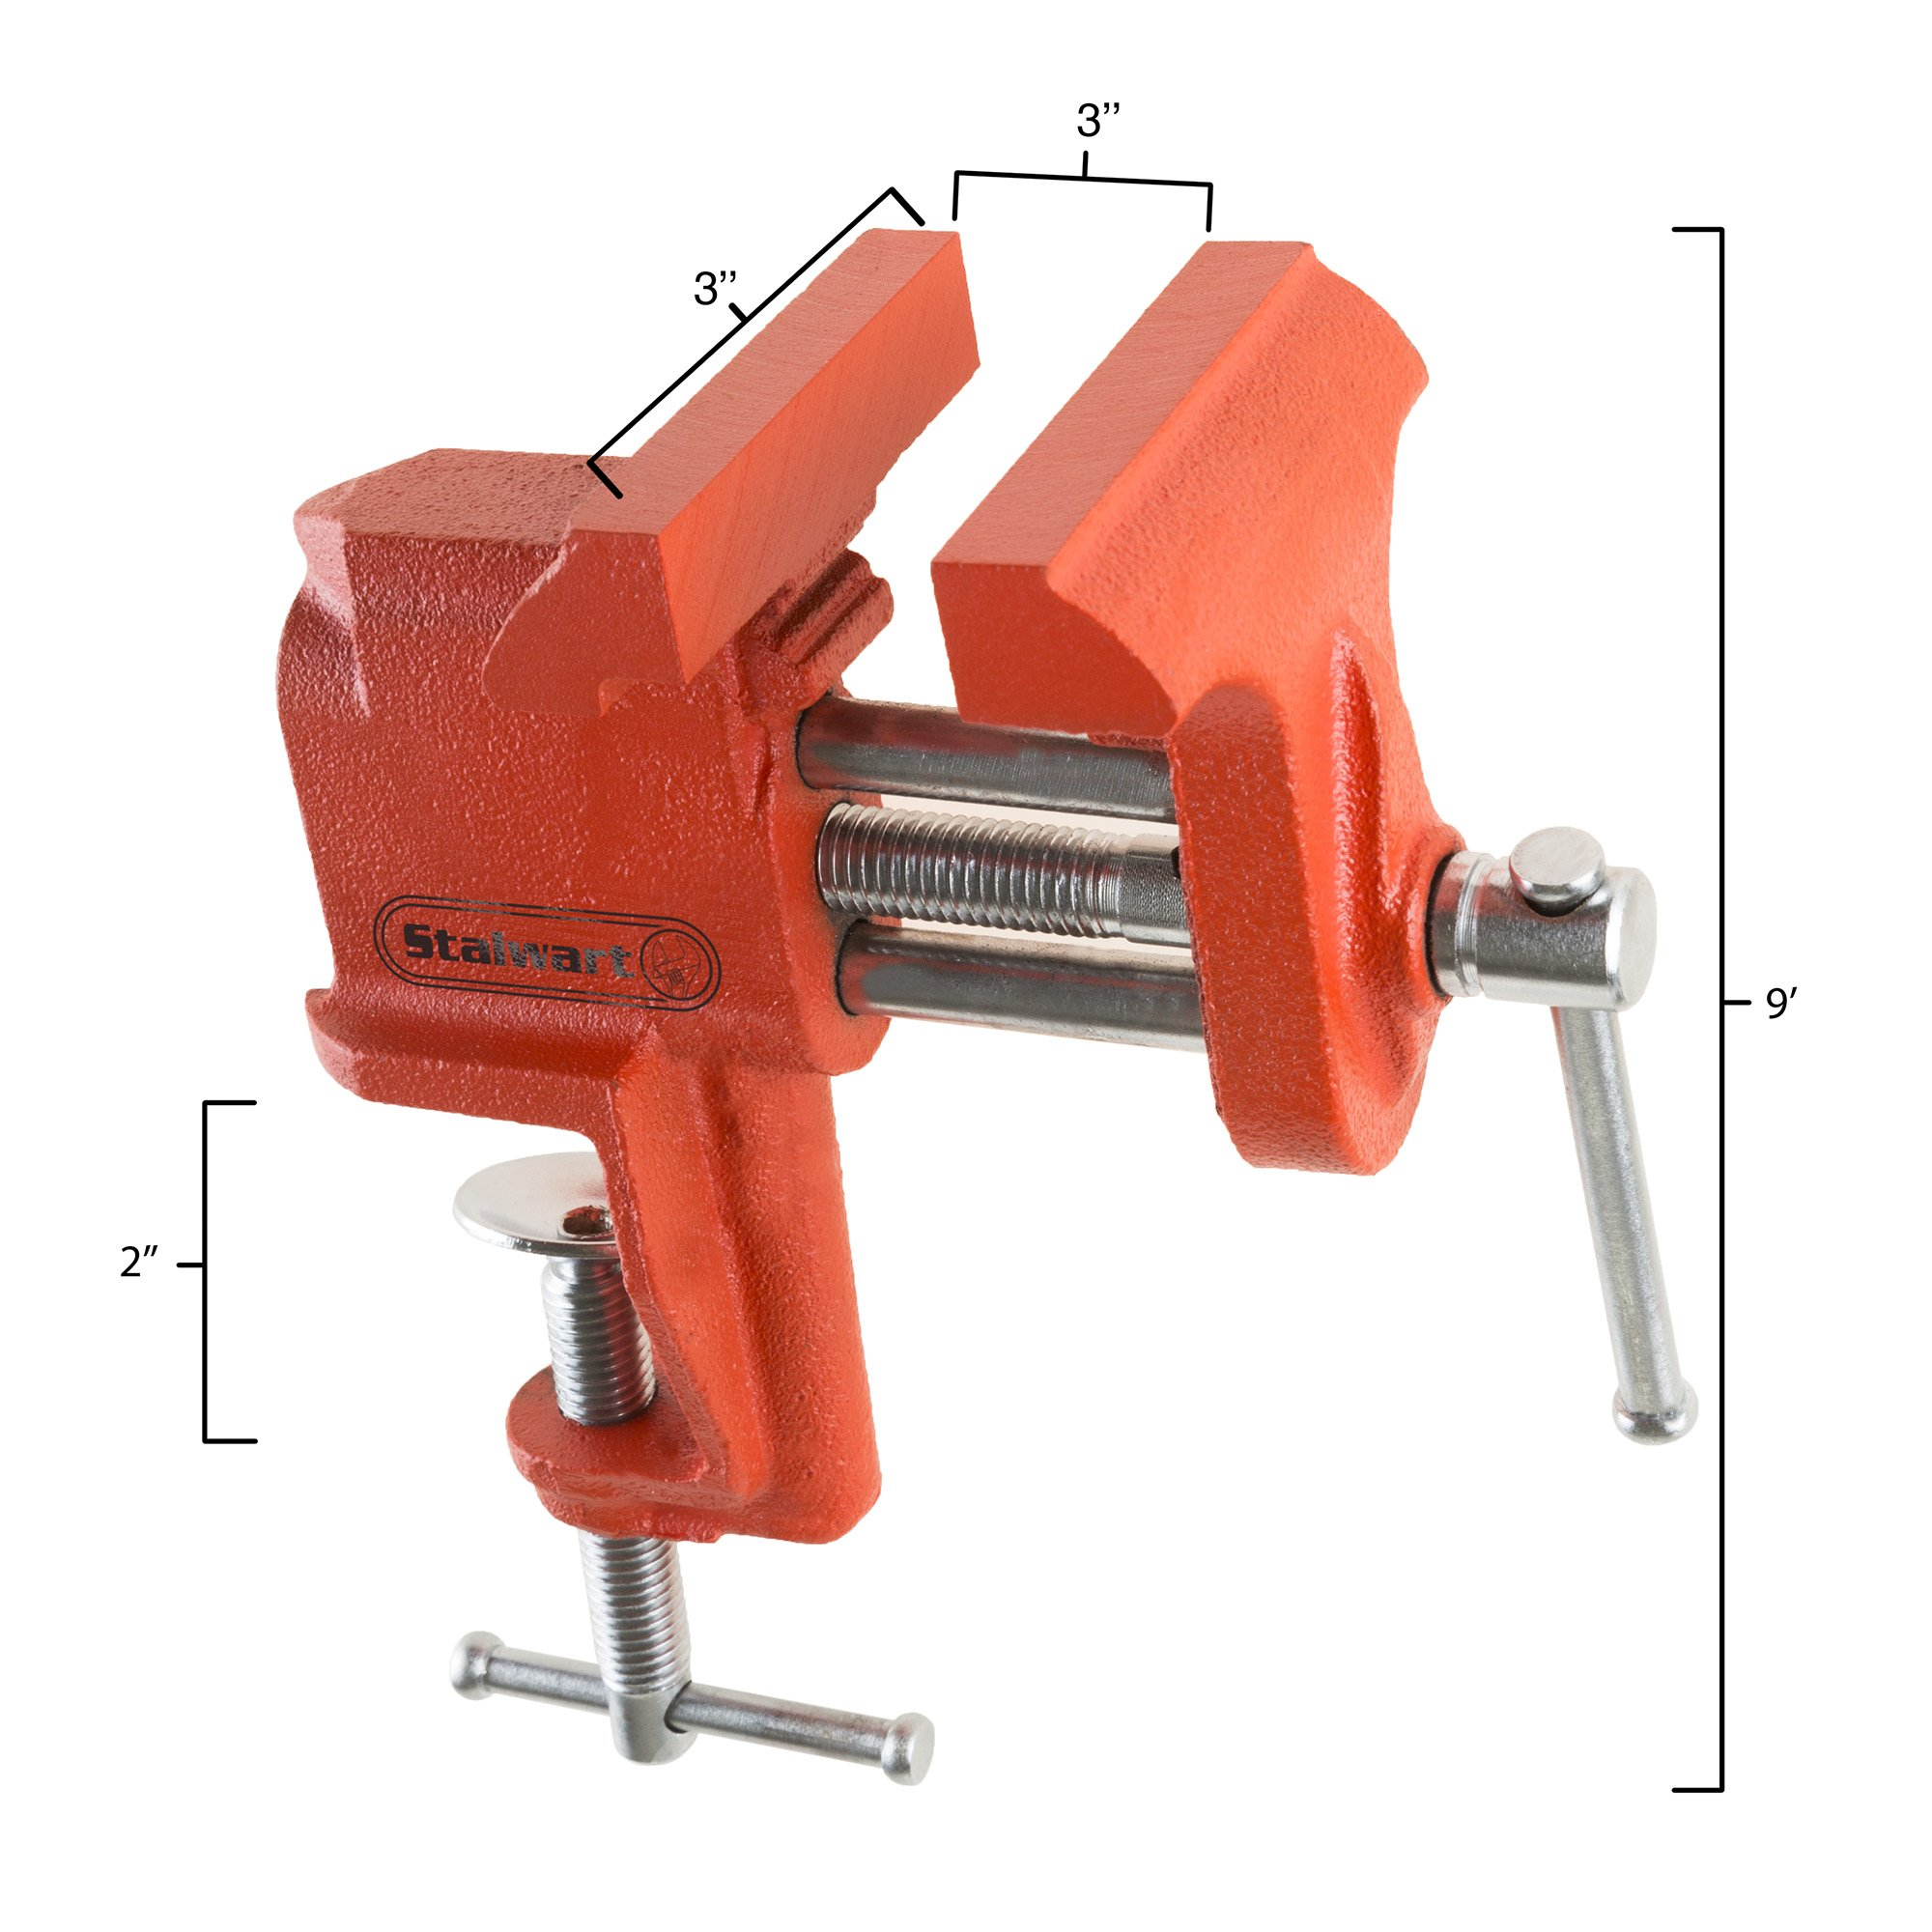 """Stalwart Clamp On Vise with 3 Inch """"V"""" Jaw for Table and Bench- Cast Iron Workbench Clamping Tool for Precision, DIY, Small Repairs and More by Stalwart (Image #2)"""